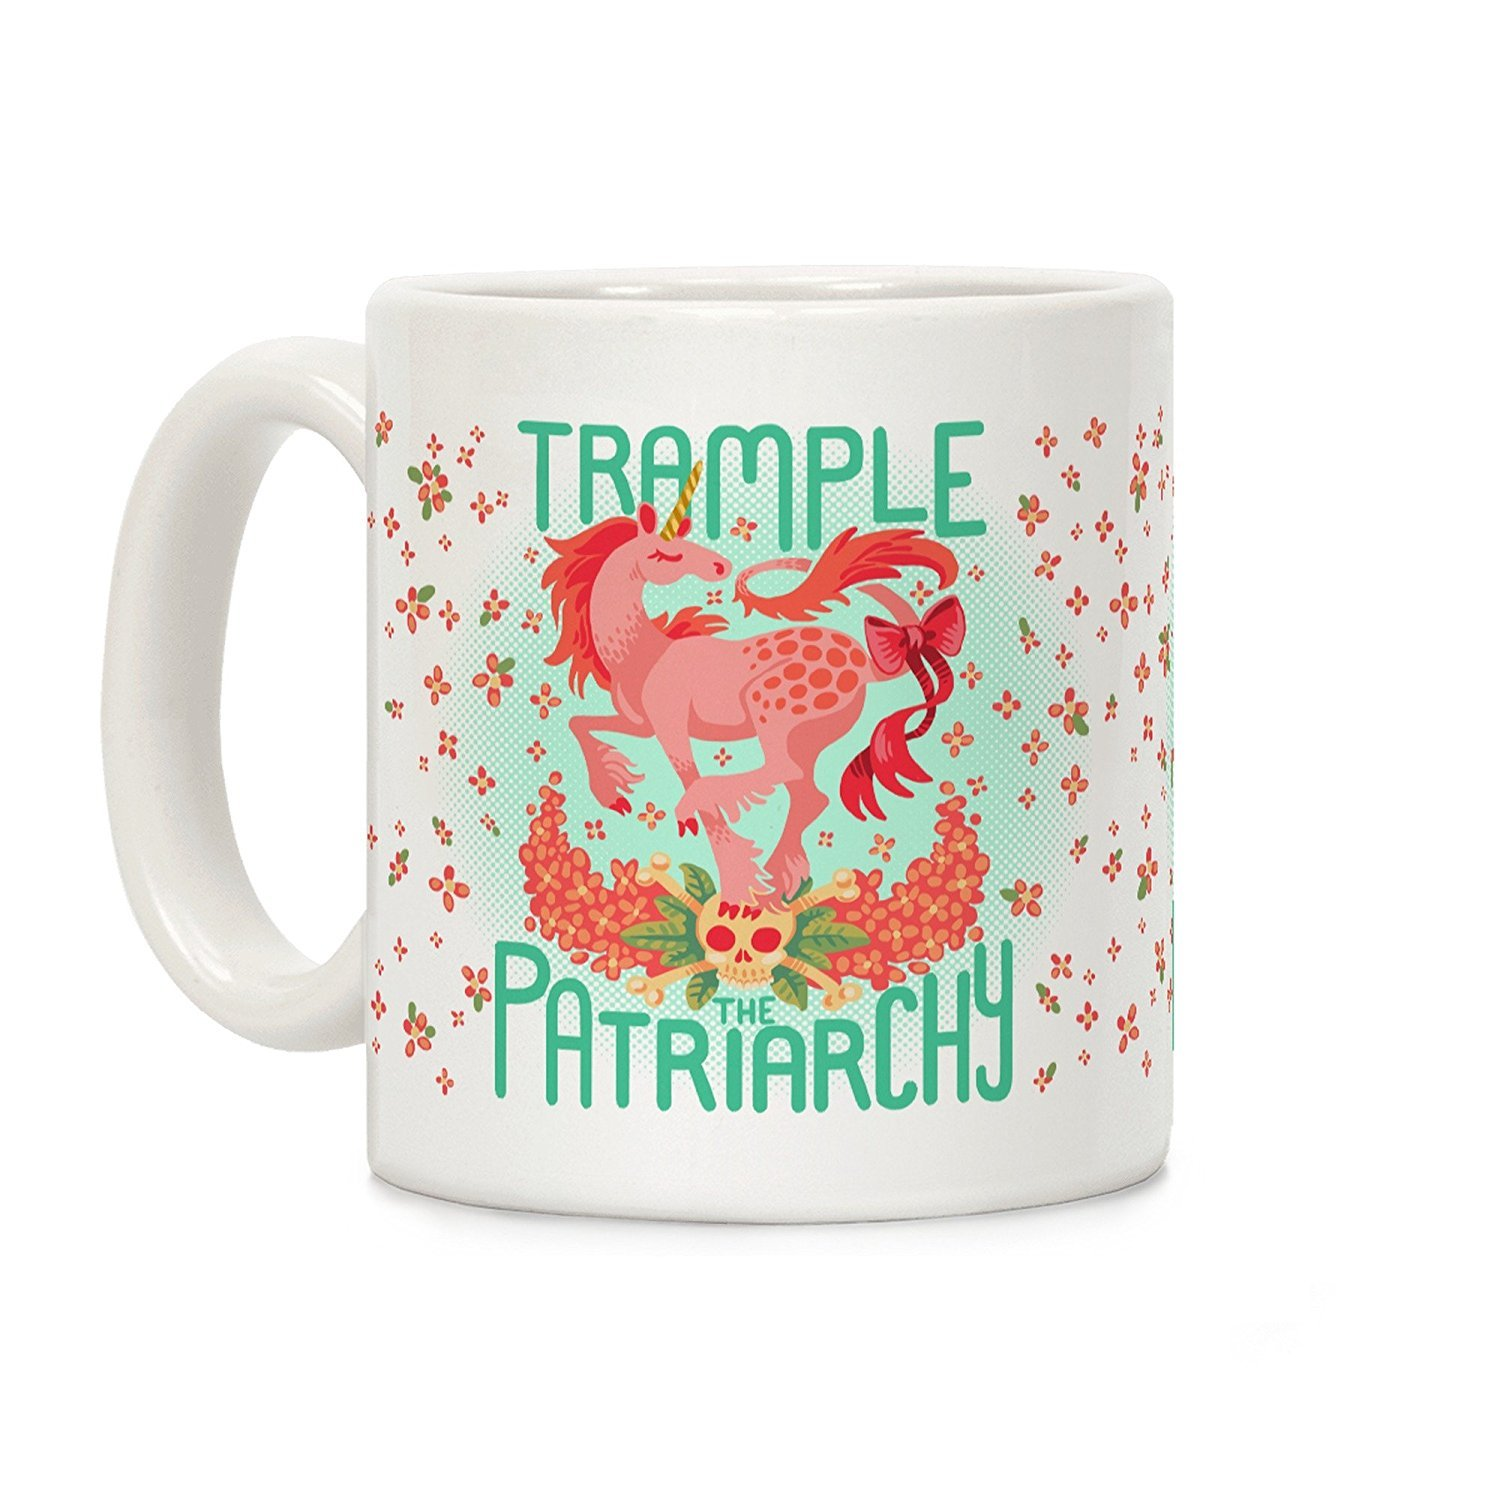 LookHUMAN Trample The Patriarchy White 11 Ounce Ceramic Coffee Mug